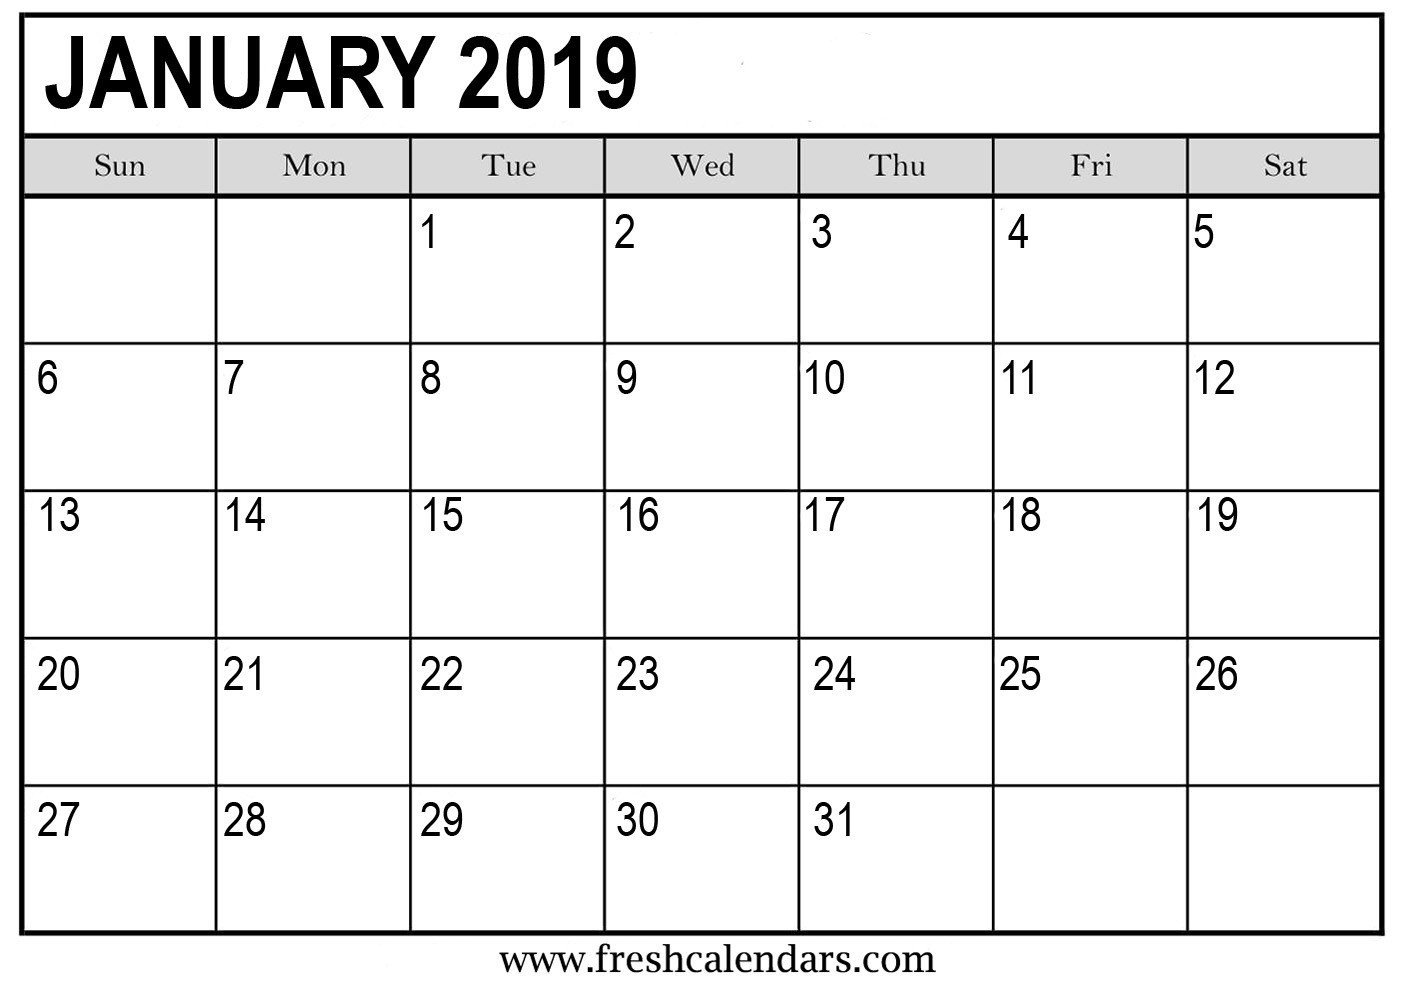 Blank Calendar Template Word January 2019 Calendar Printable Fresh Calendars